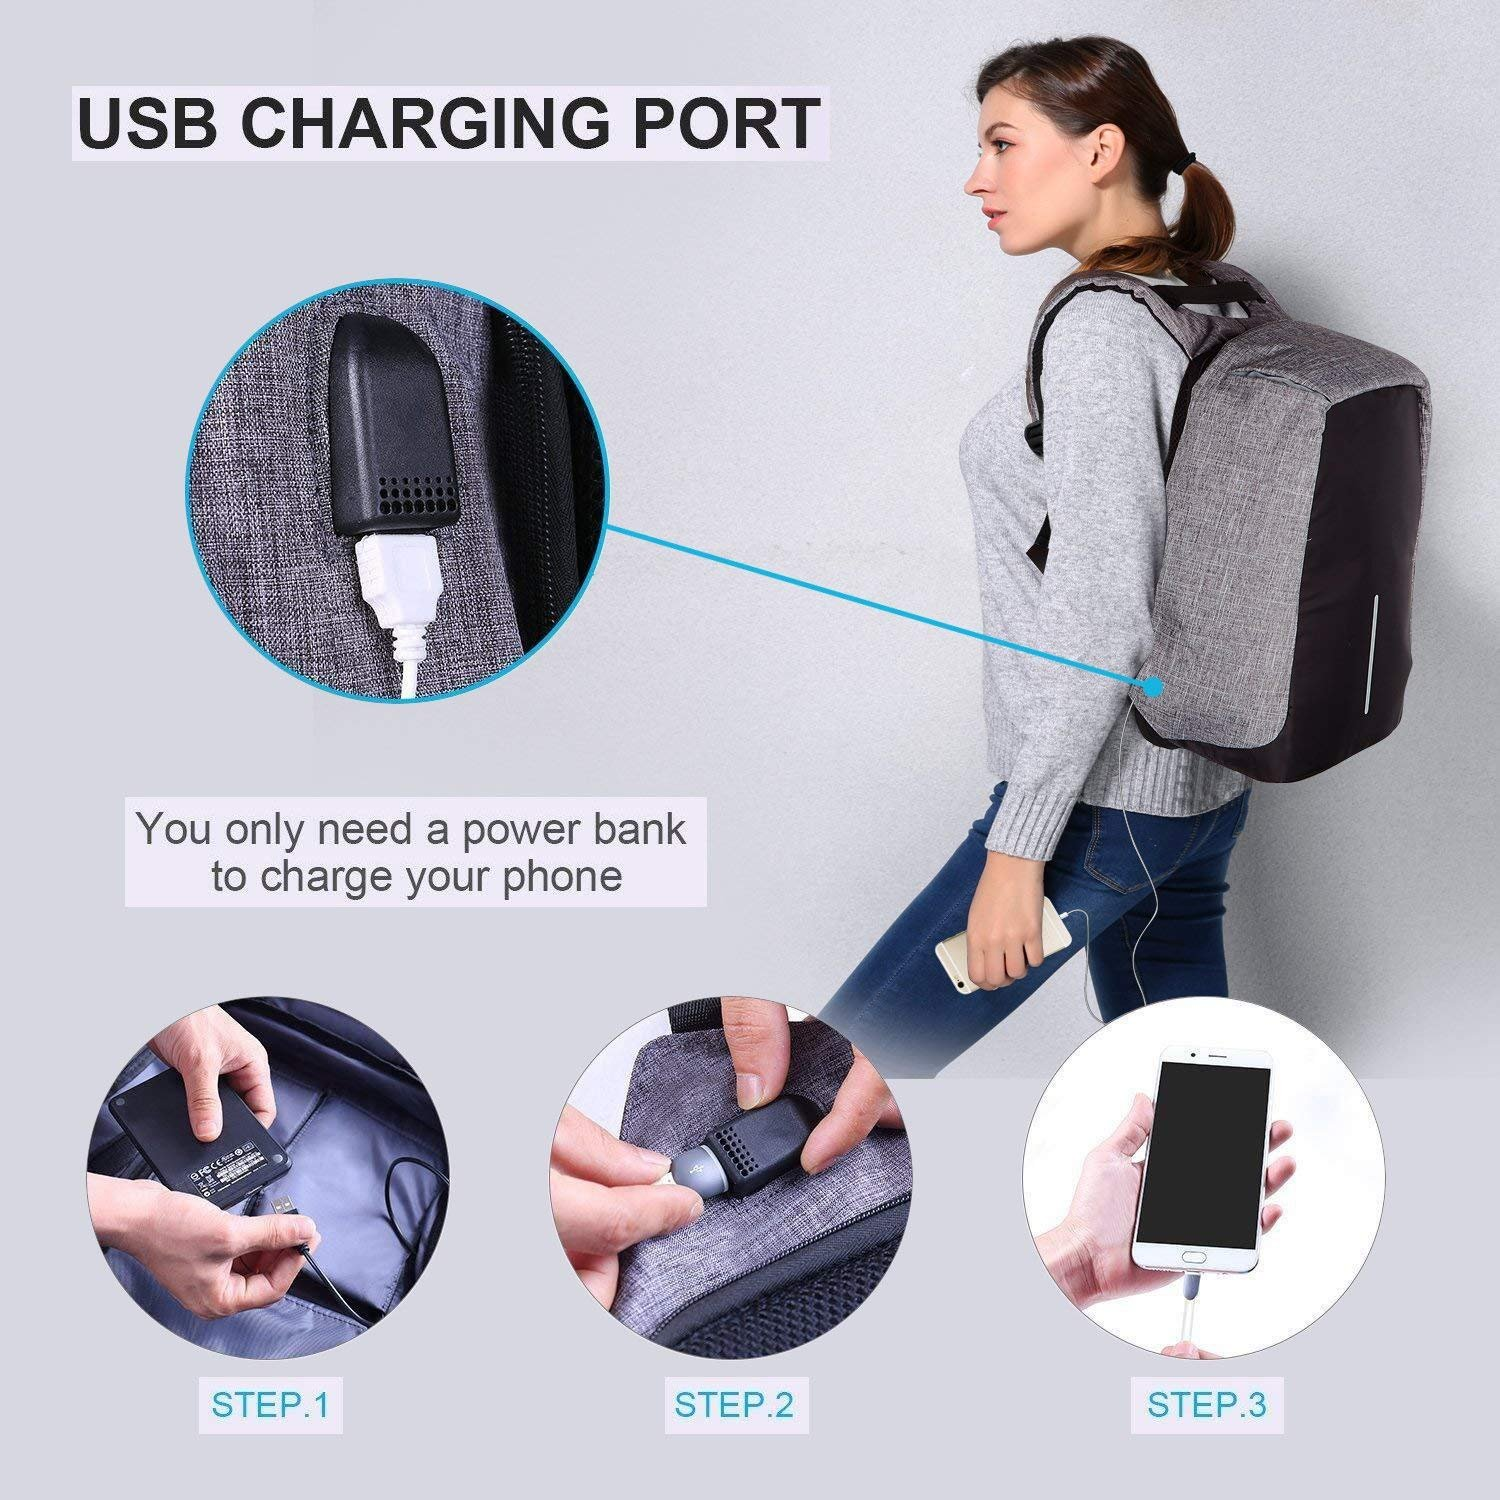 Laptop Backpack business anti-theft waterproof travel computer backpack with USB charging port college school computer bag for women & men fits 15.6 Inch Laptop and Notebook - Grey by Langus (Image #2)